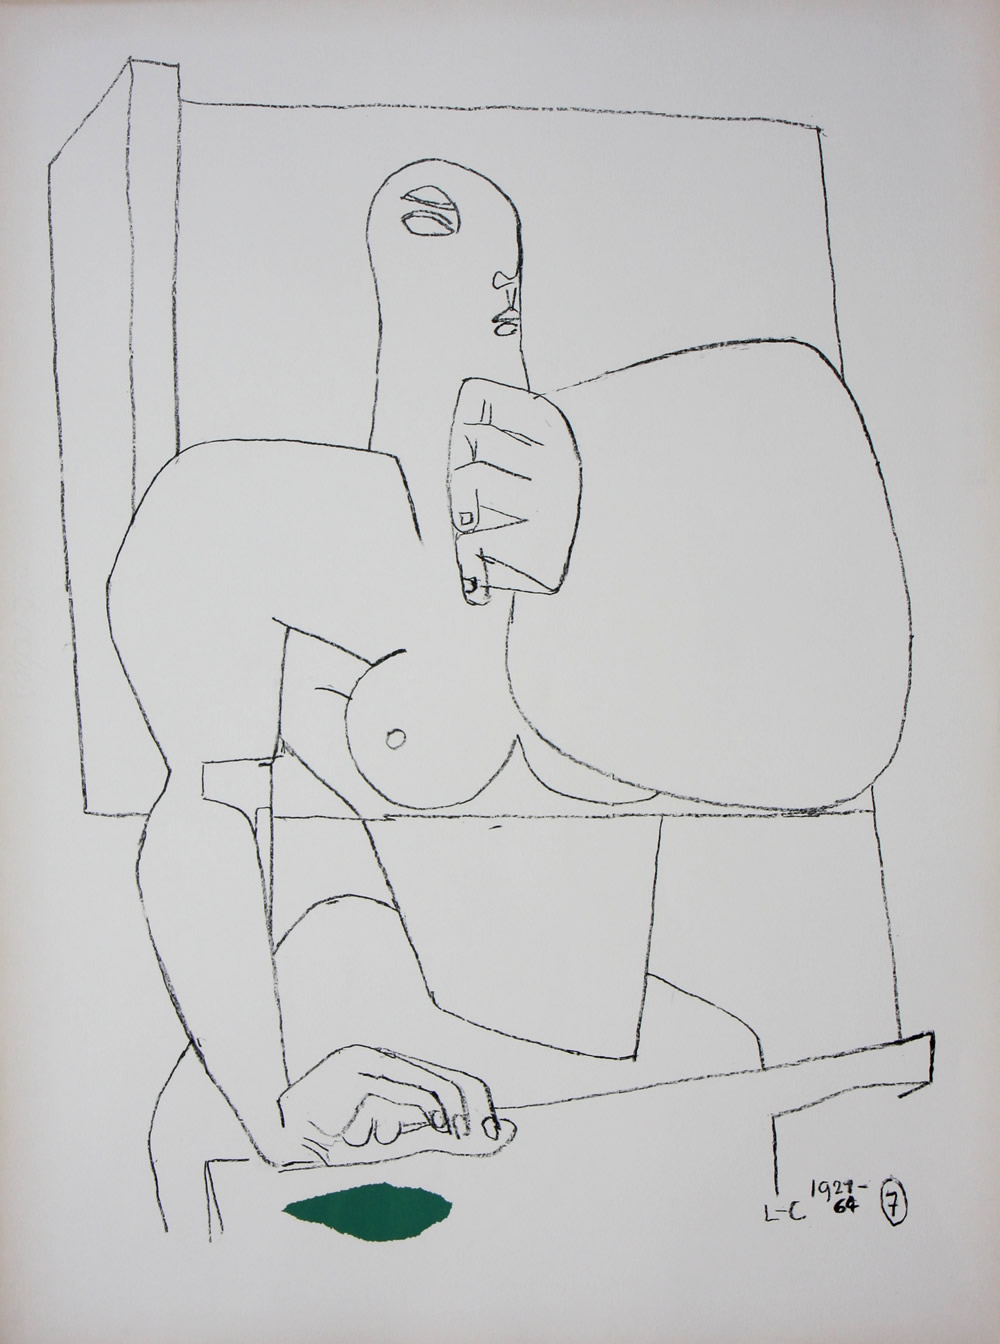 Le Corbusier - Athlete 7